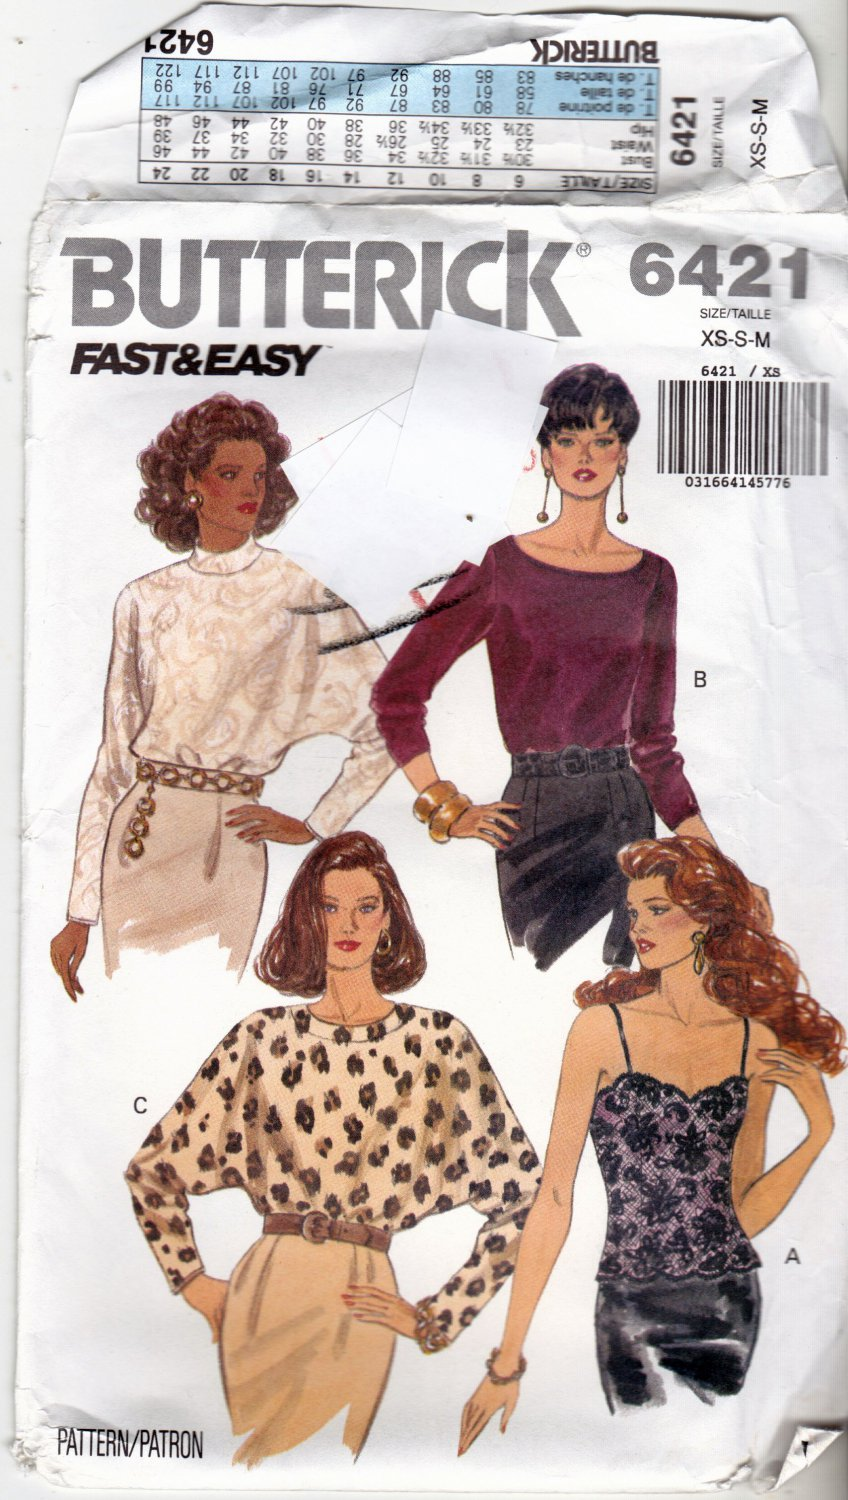 Butterick 6421 Pattern uncut XS S M Camisole Long Sleeve Tops Fitted or Loose Fitting